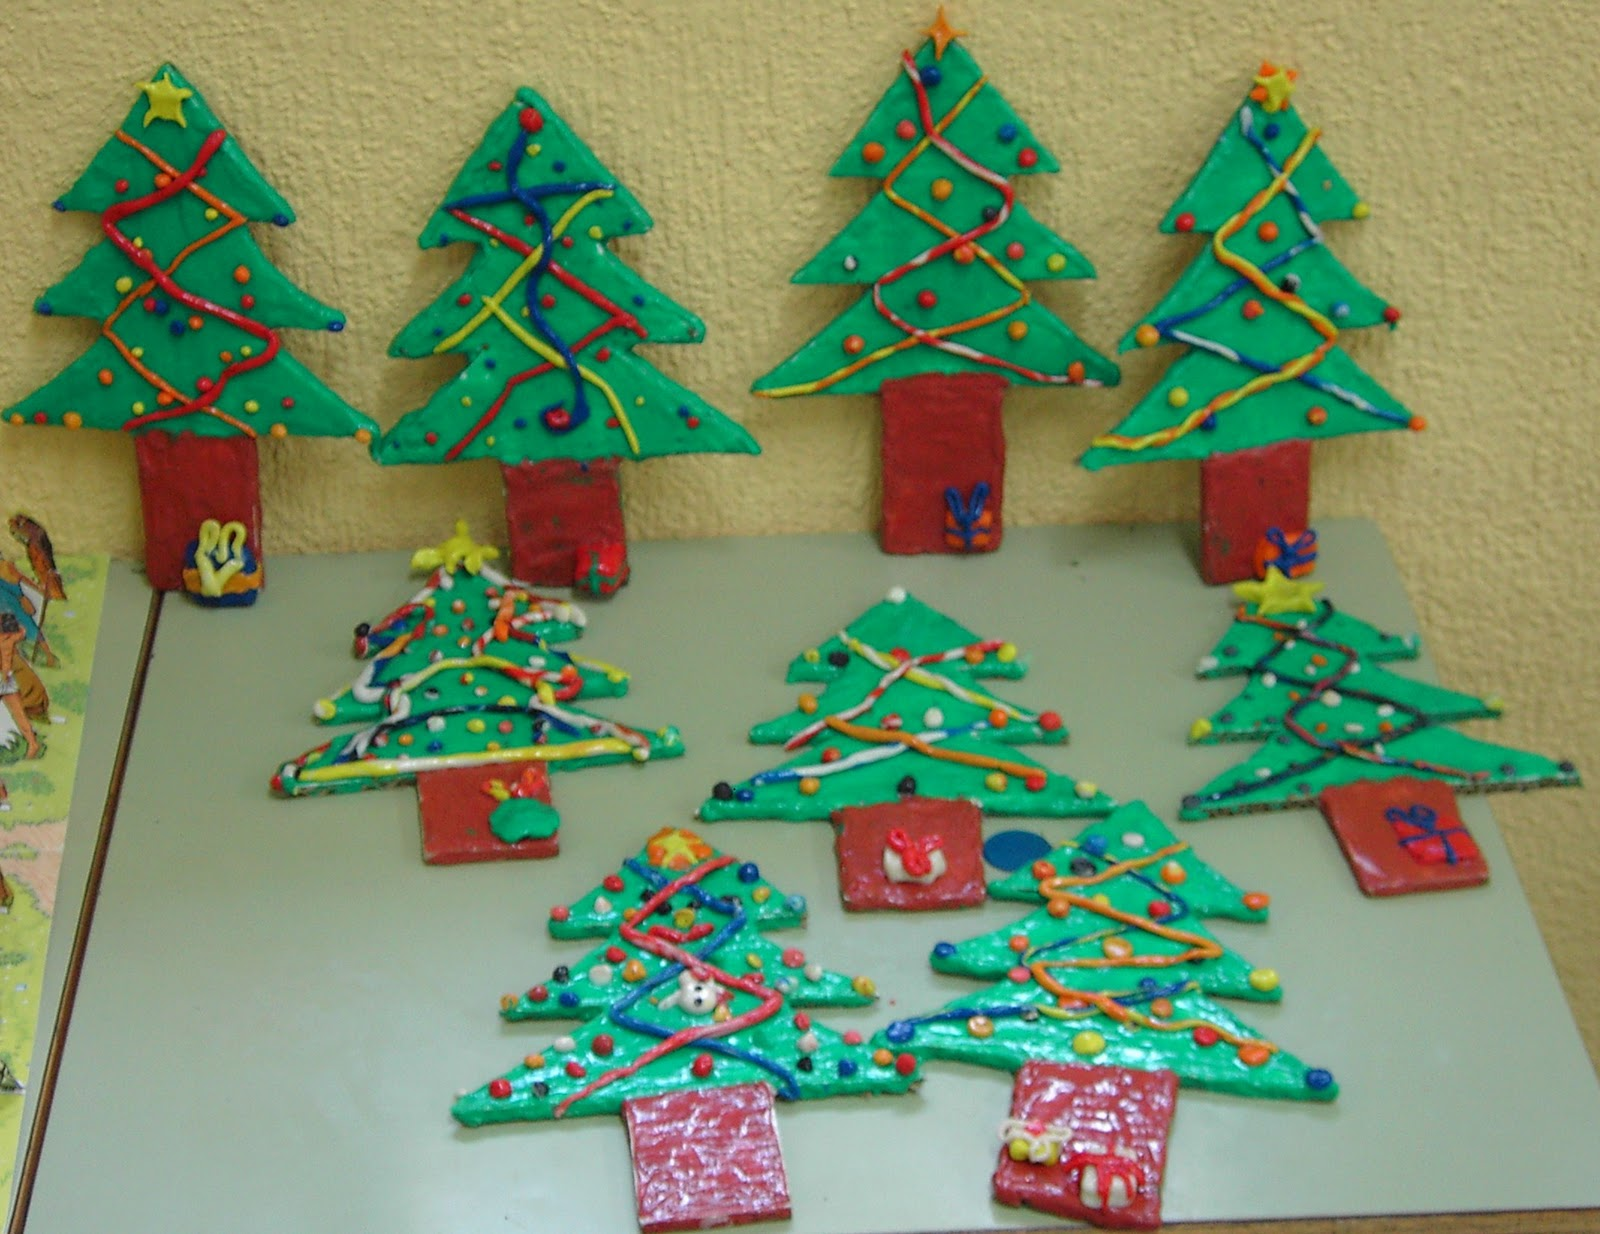 Pino De Navidad Con Material Reciclable | Search Results |